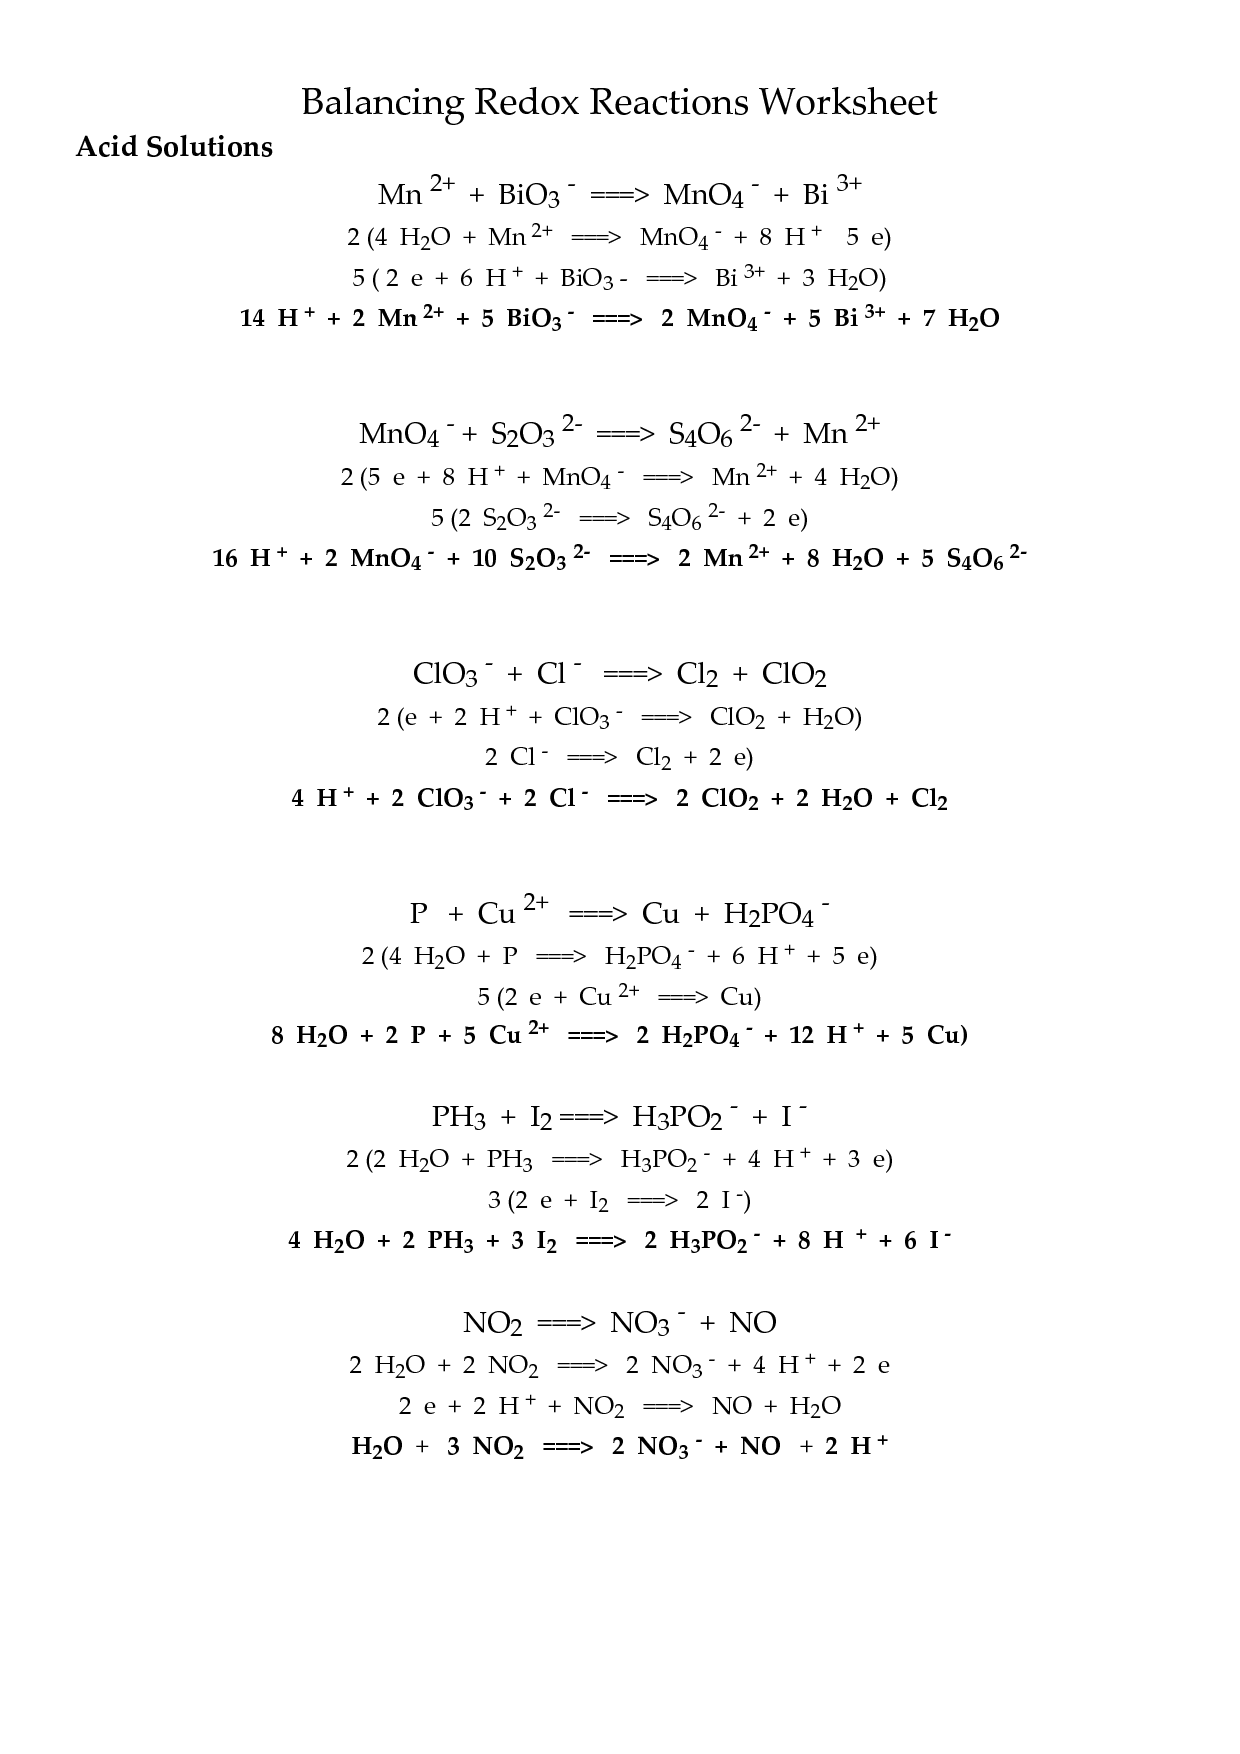 Redox Reactions Worksheet